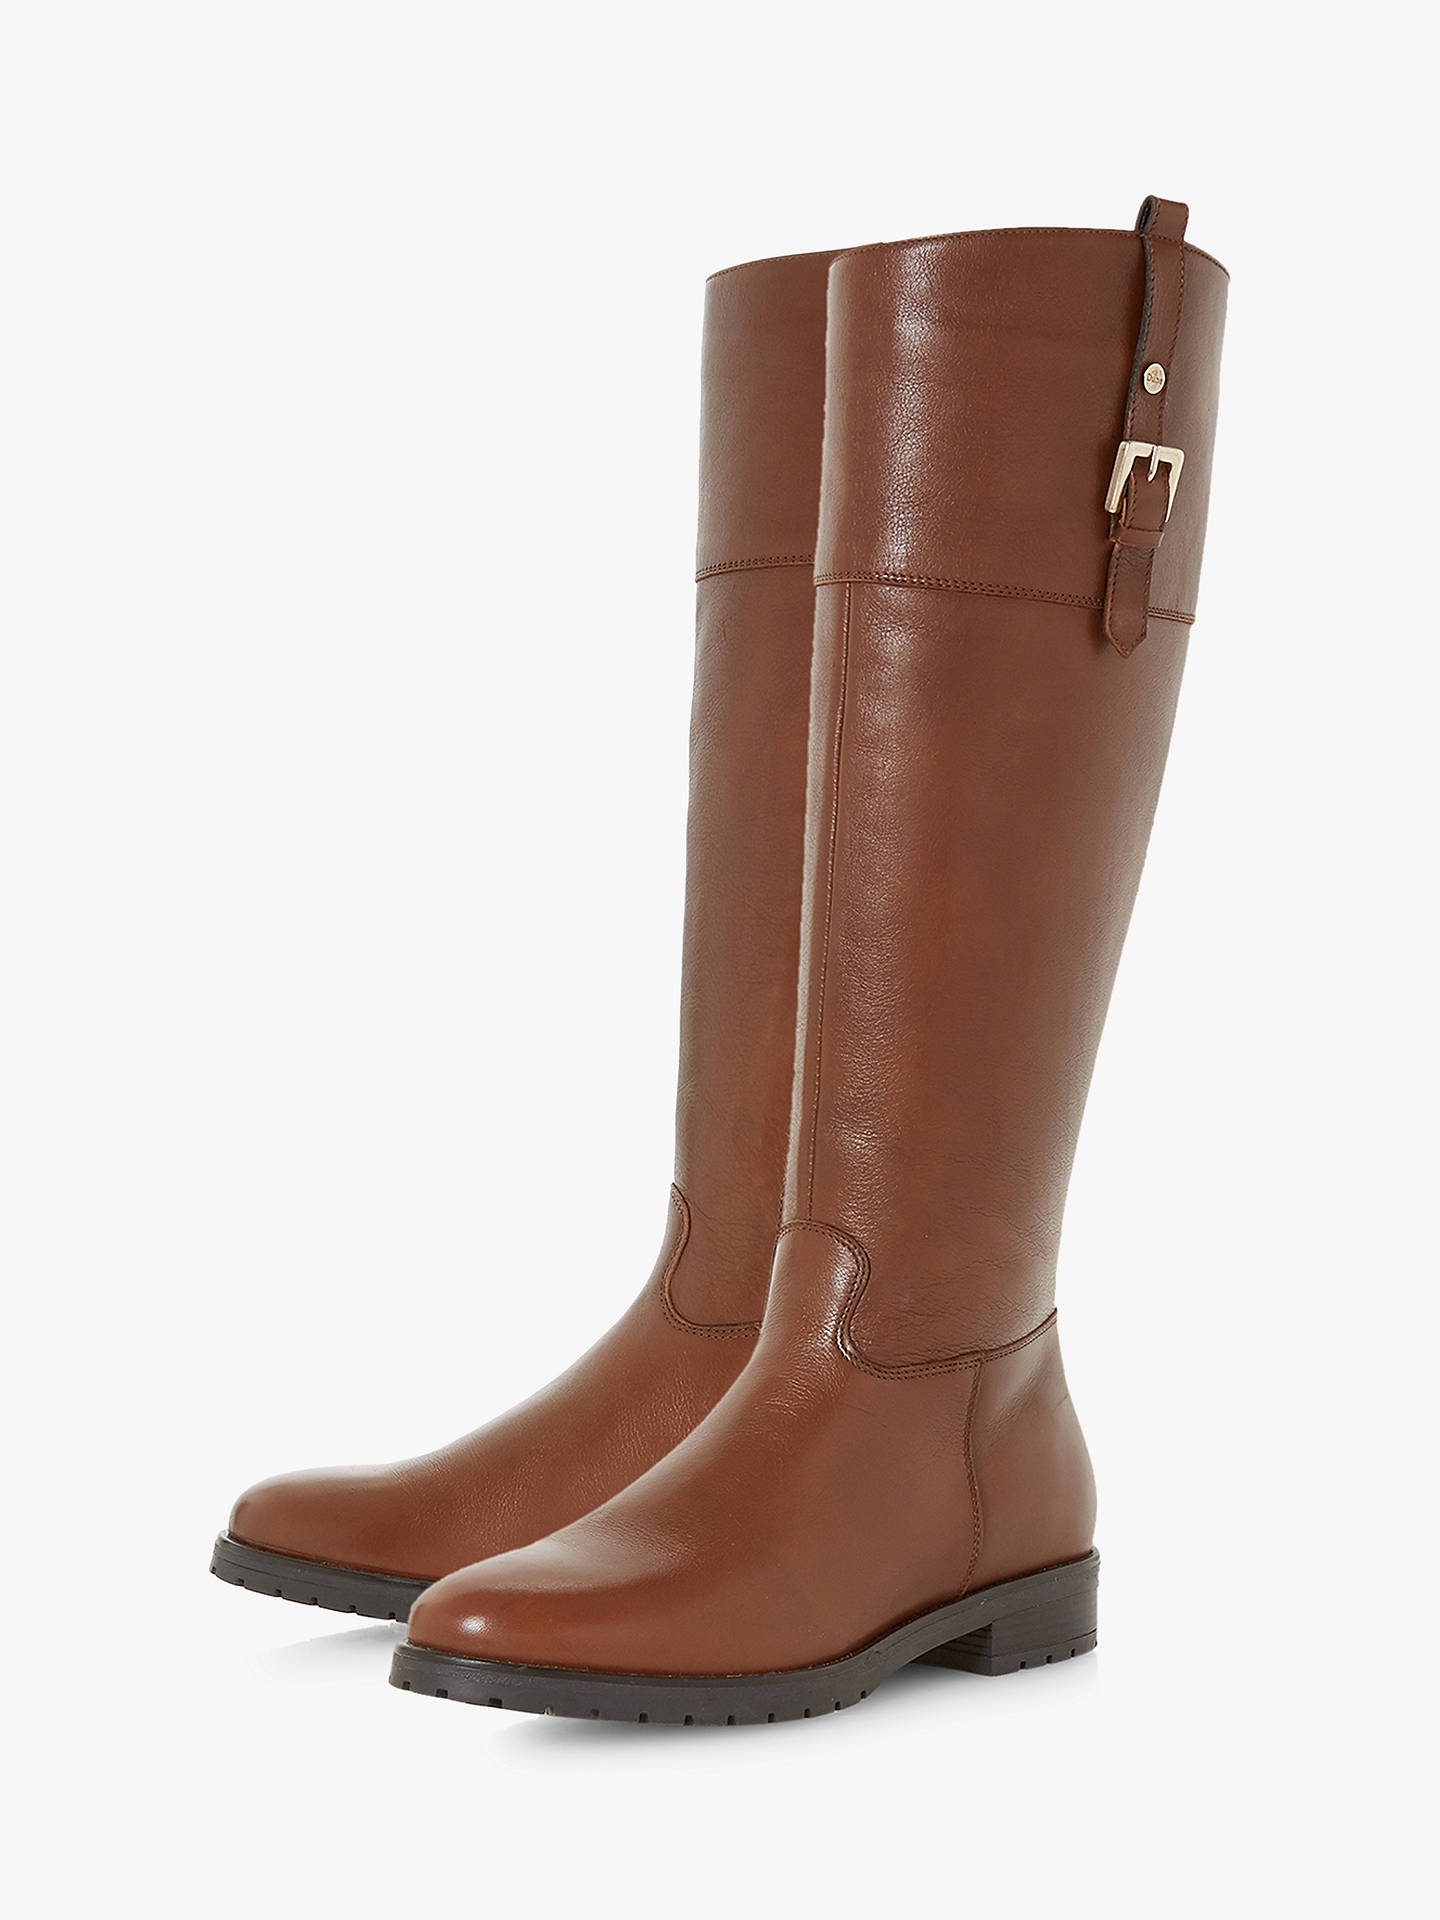 Buy Dune Vinne Knee High Boots, Tan Leather, 5 Online at johnlewis.com